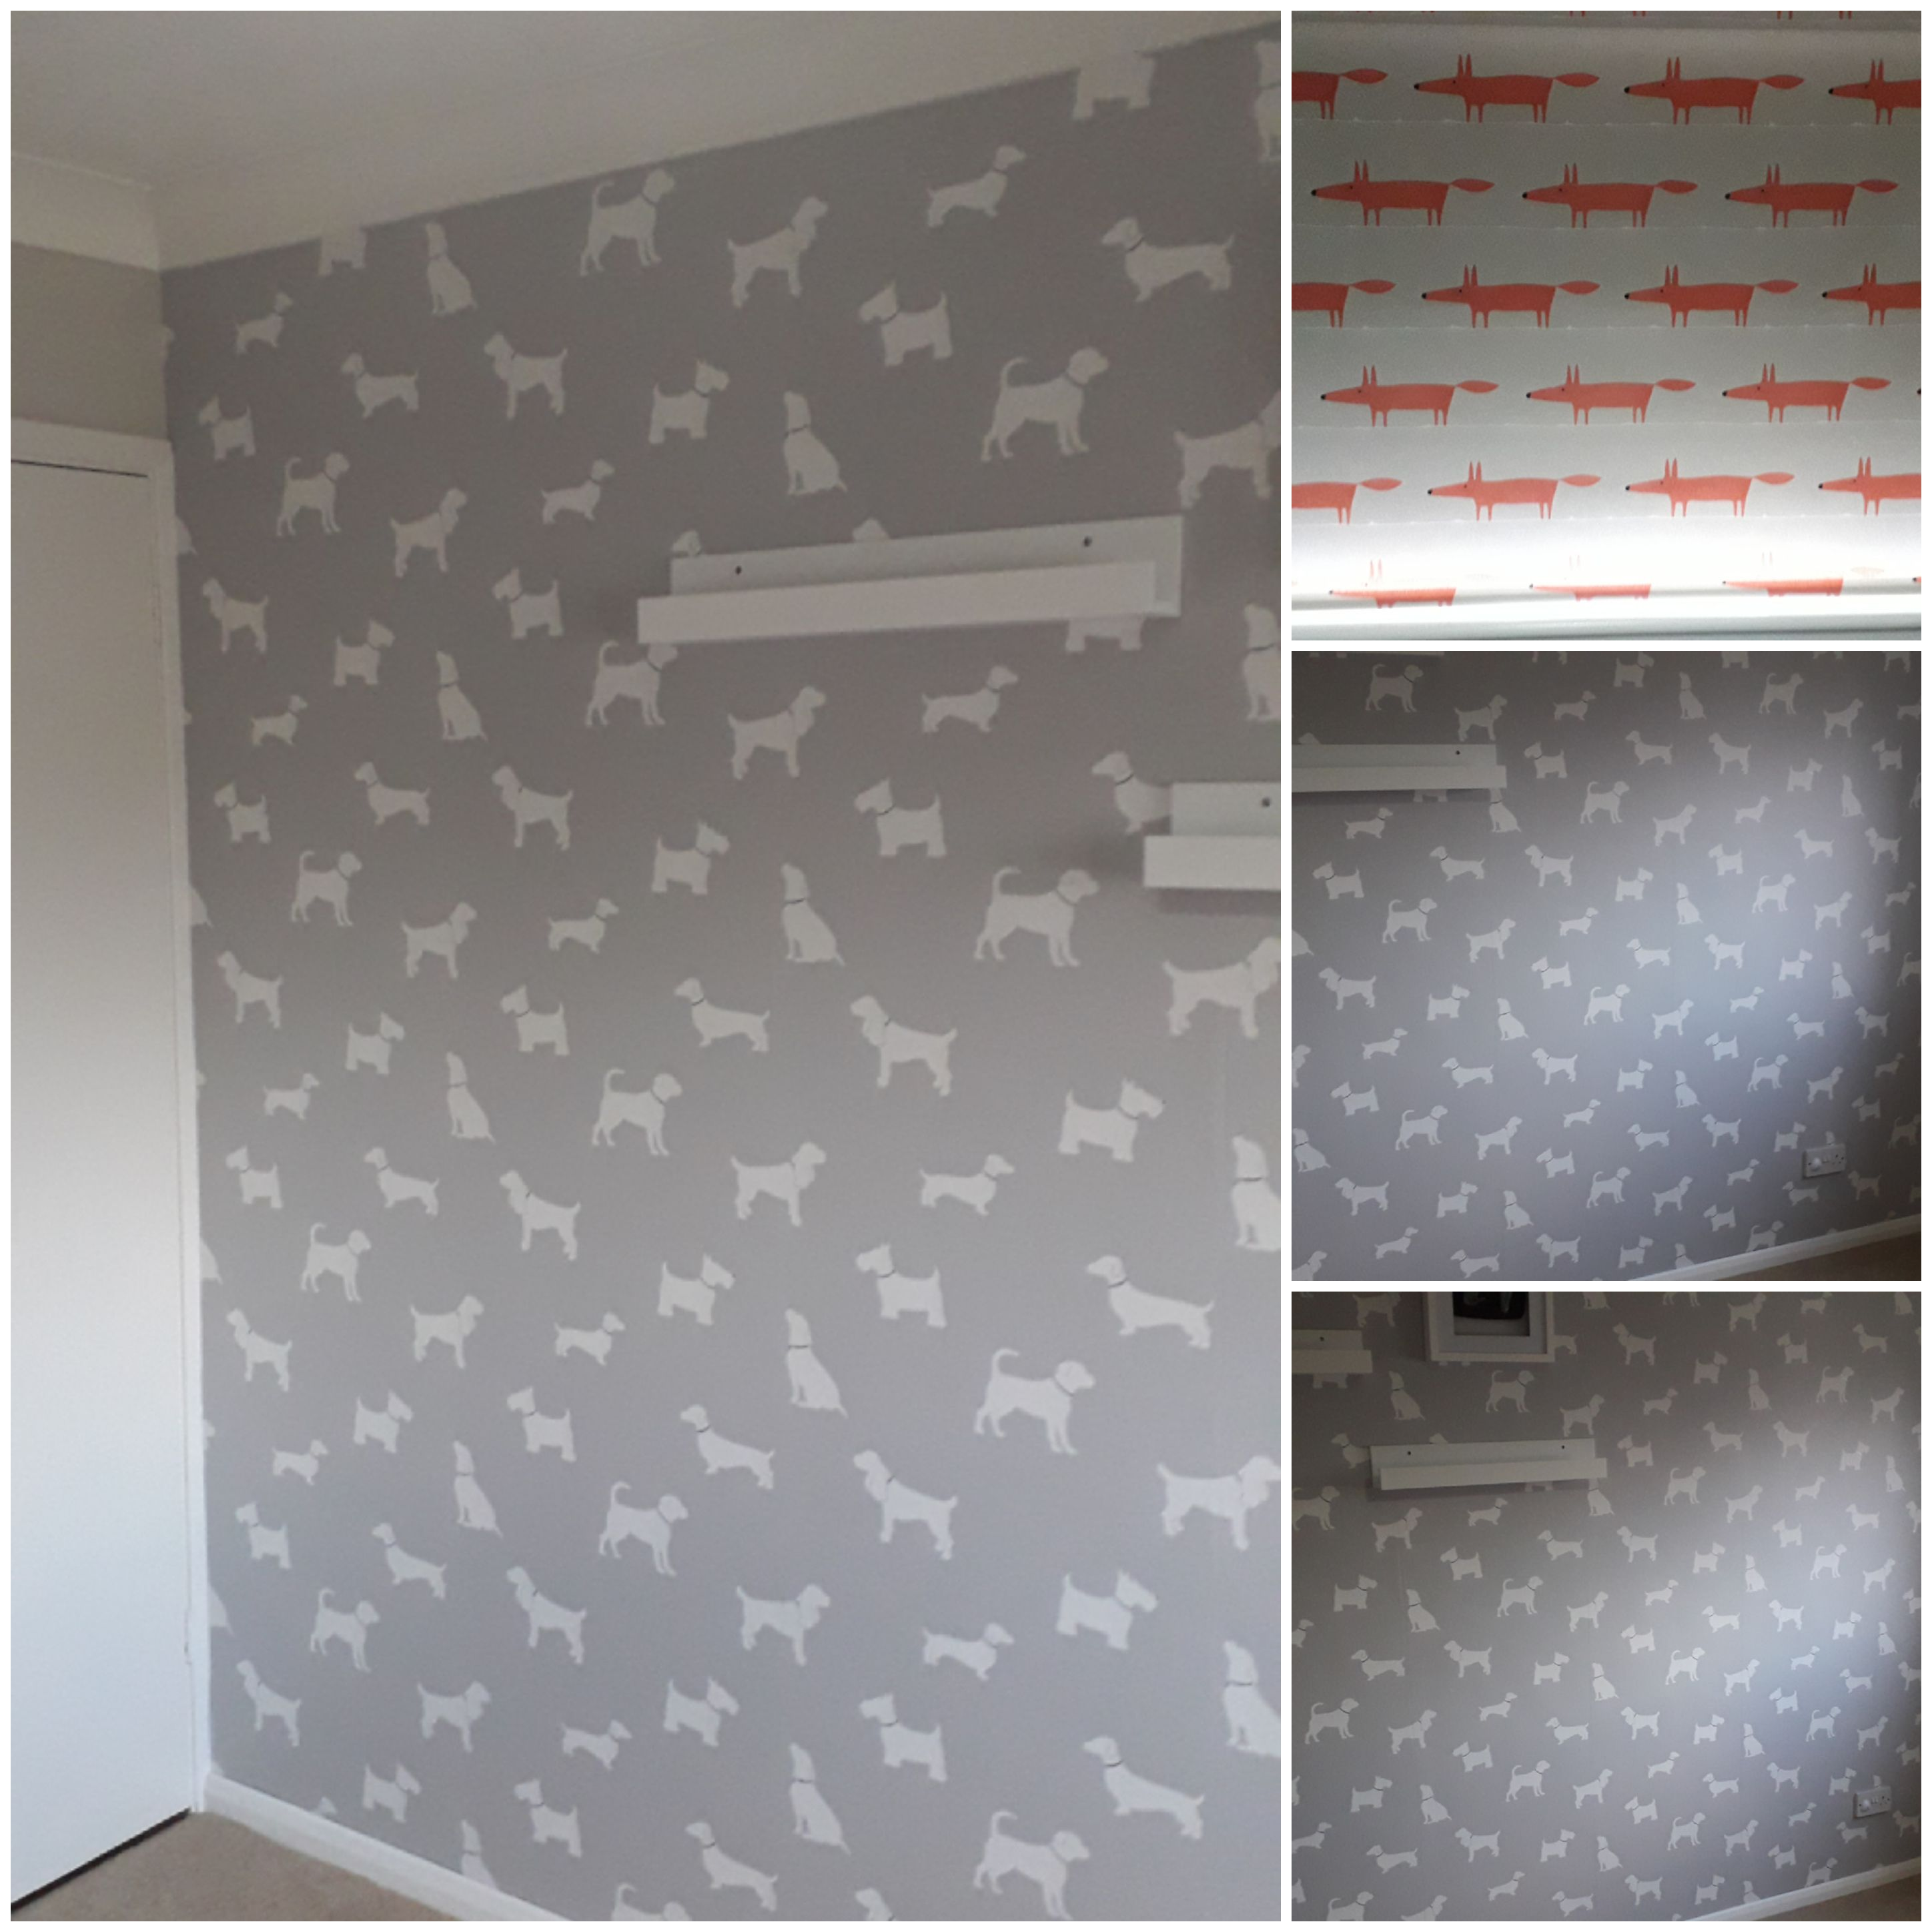 Wallpaper painting and decorating